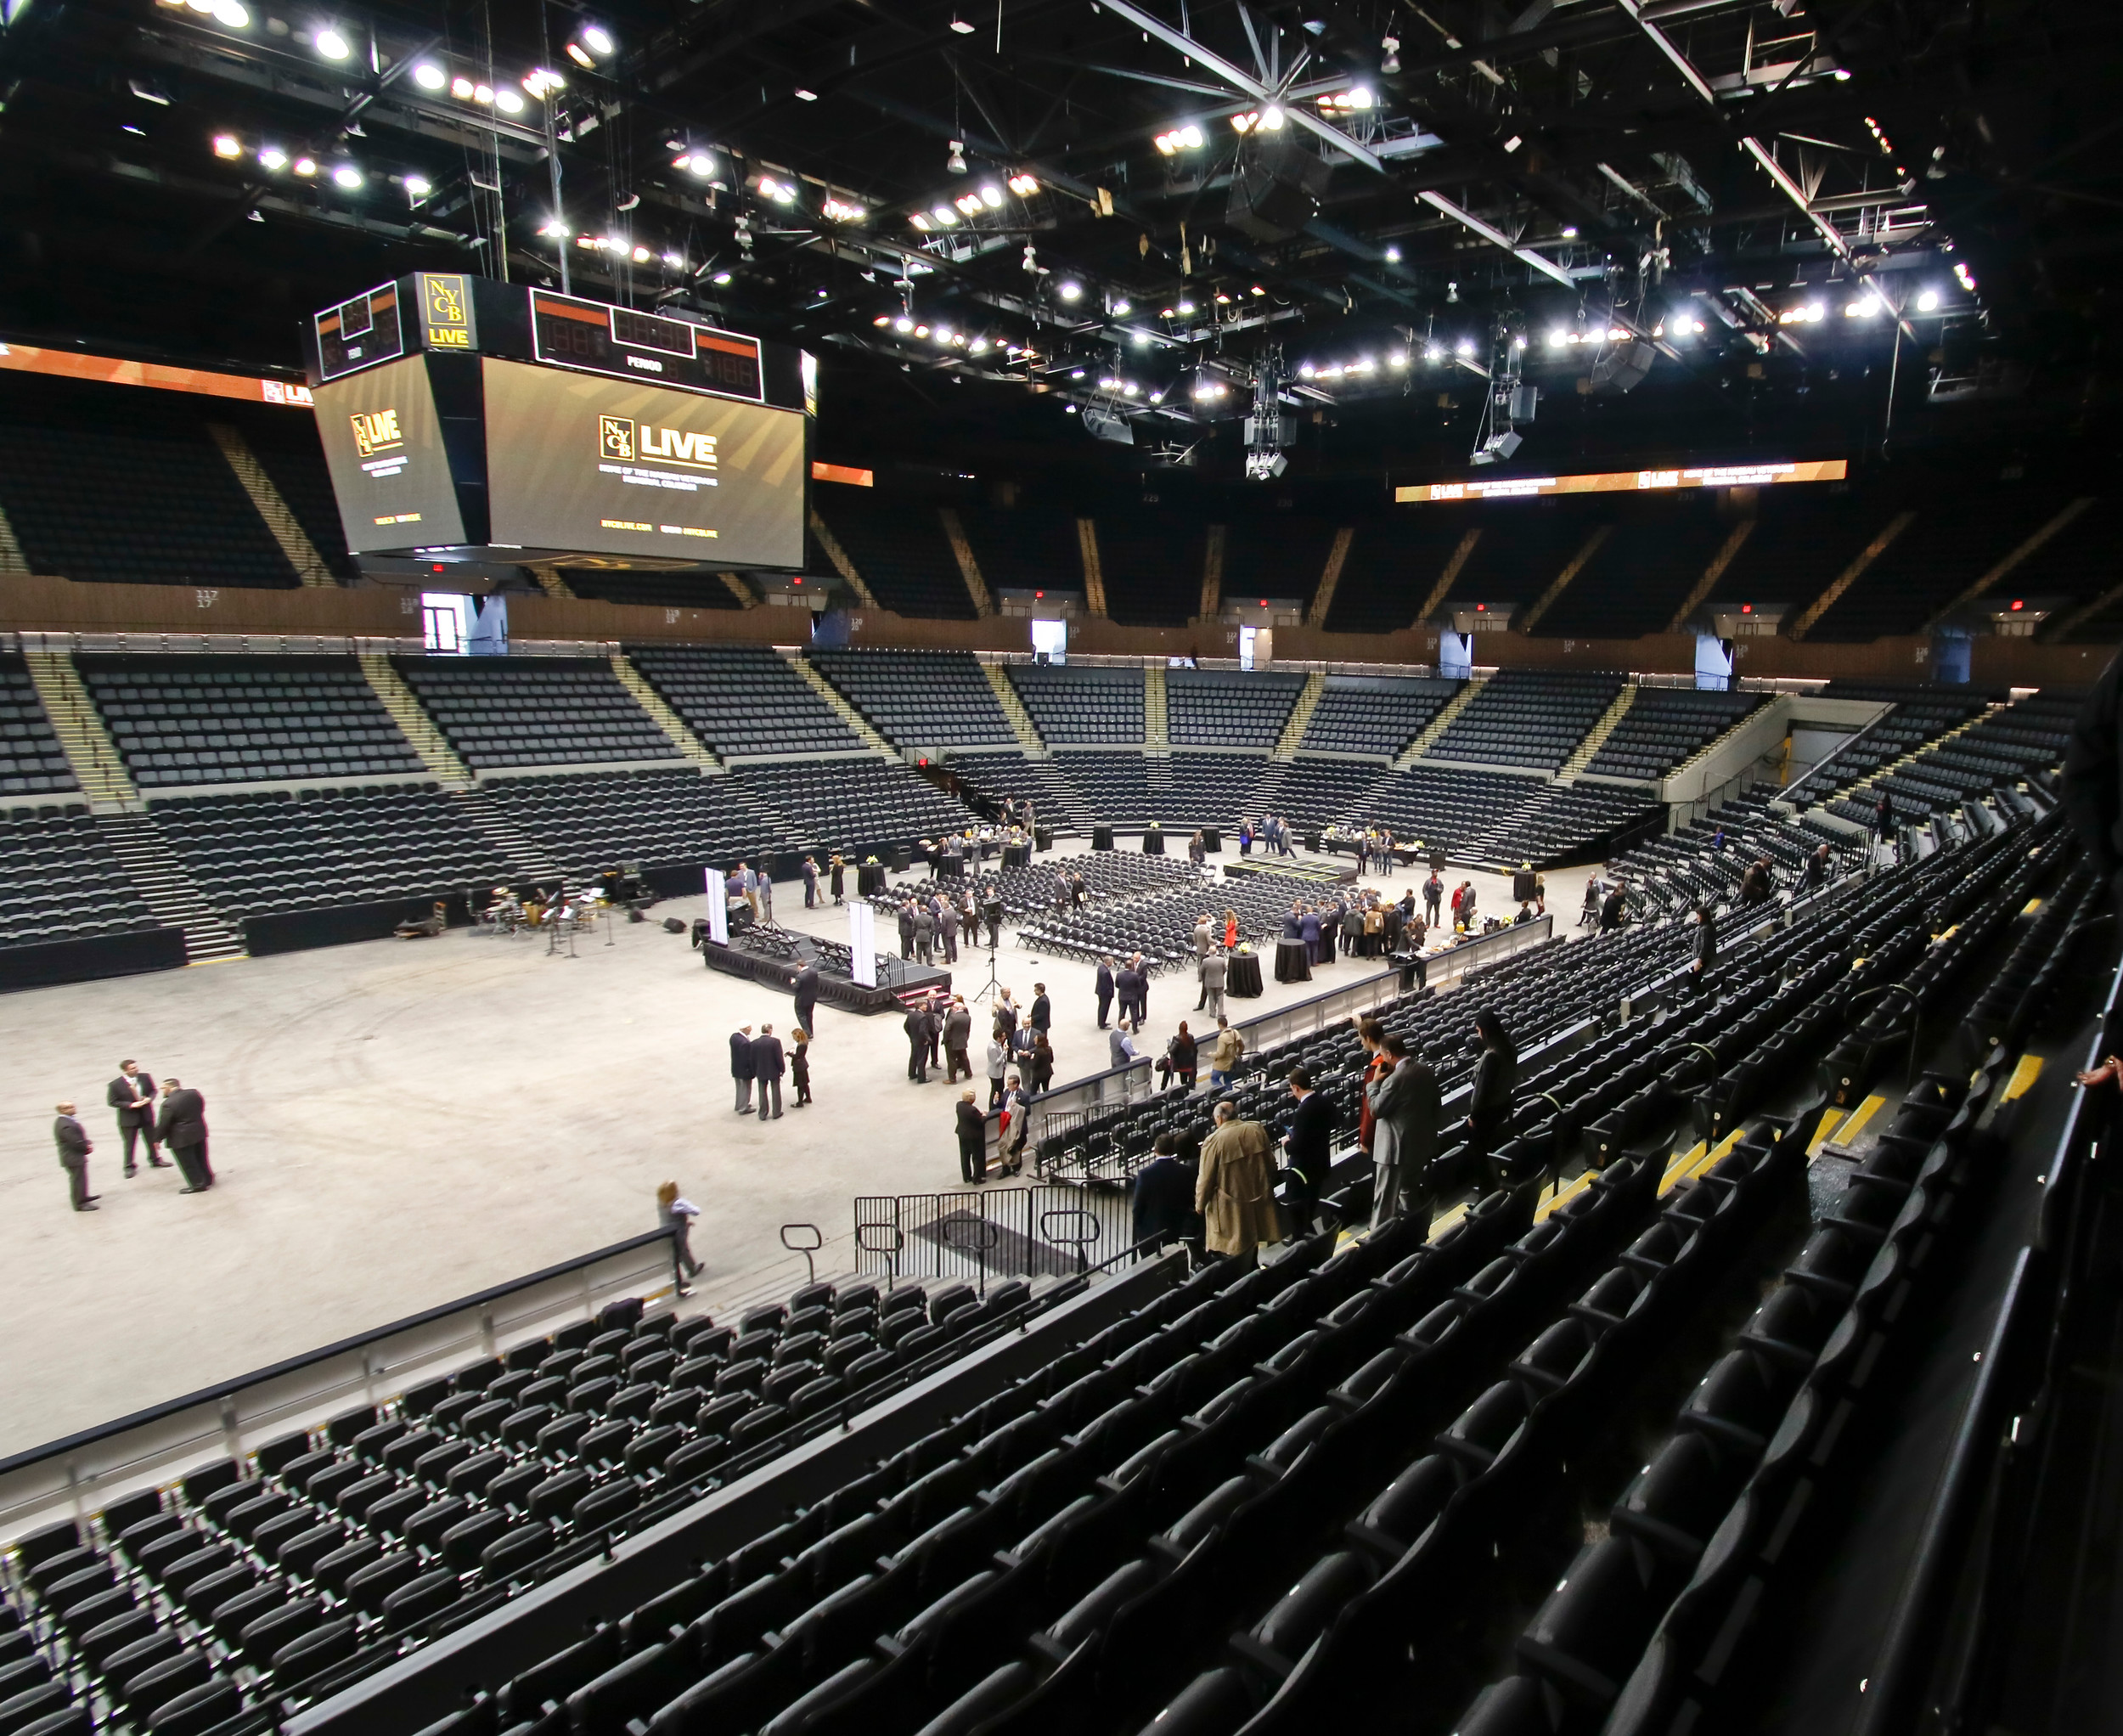 The new venue is 416,000 sq ft. Concerts can seat up to 16,000; Basketball 14,000; MMA/Boxing 14,500; Hockey 13,900 and Theater 4,500. Guests will have access to free Wi-Fi and the new venue says it has better phone service then the old one.